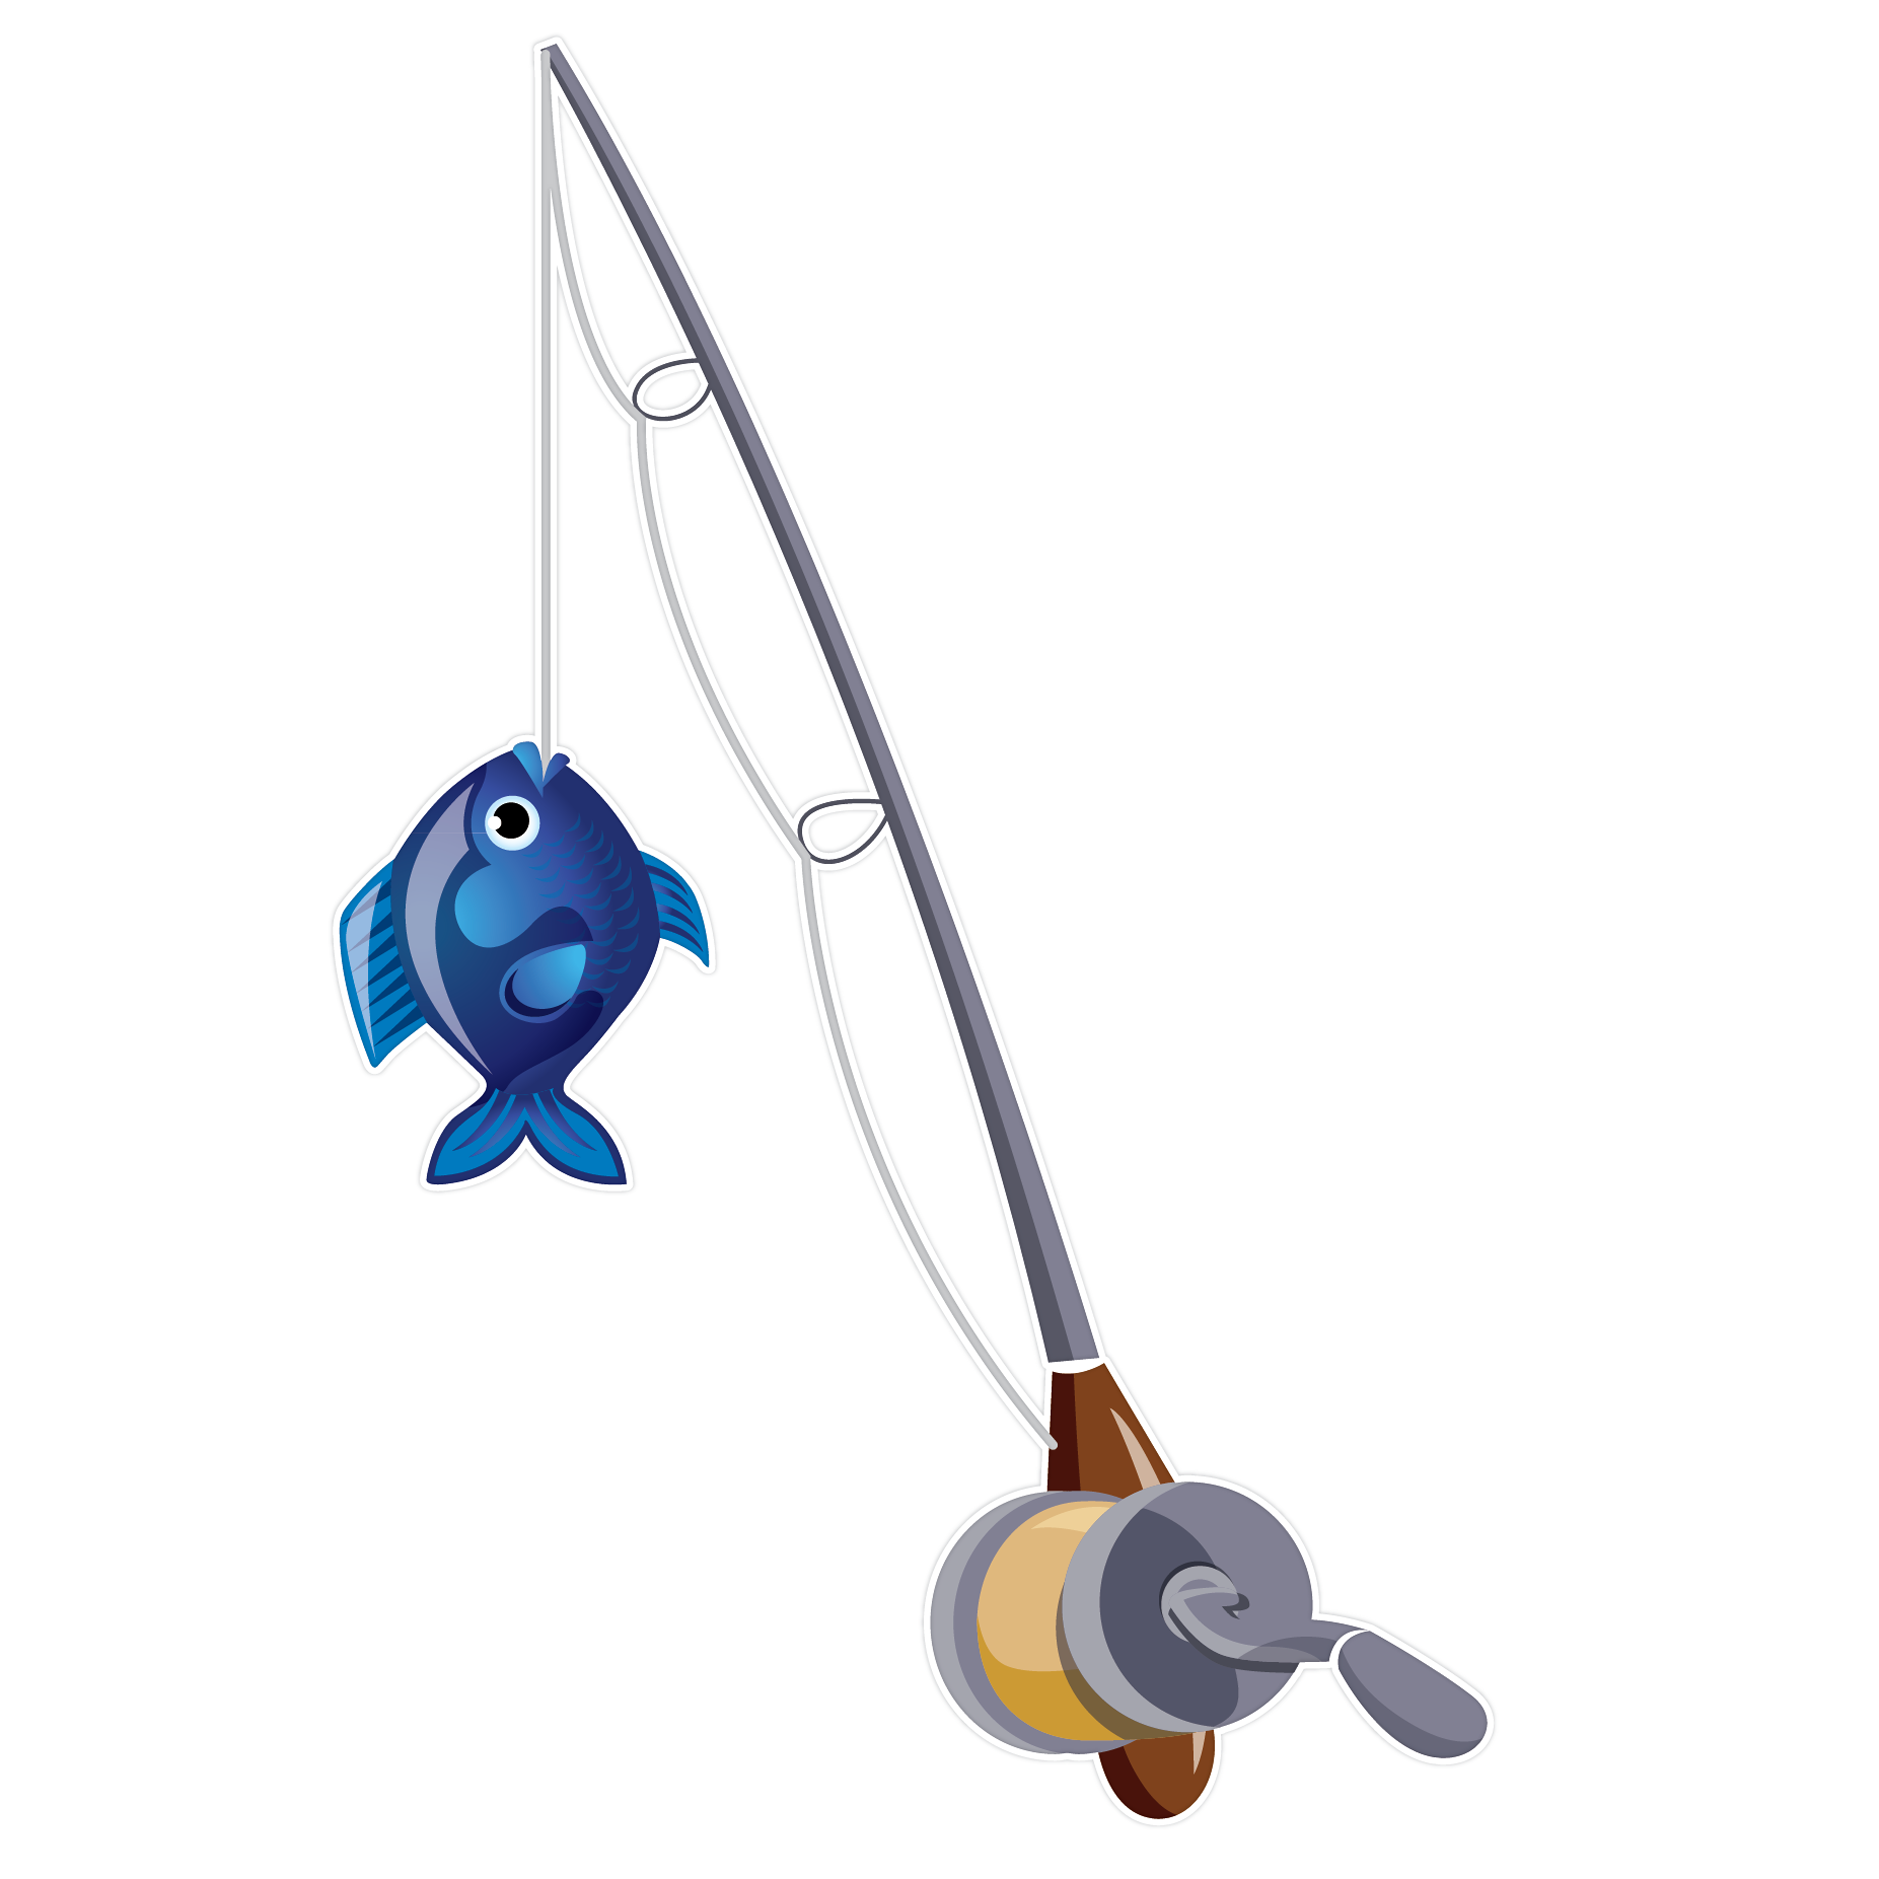 ... Fishing Rod With Fish Clipart ...-... Fishing Rod With Fish Clipart ...-11